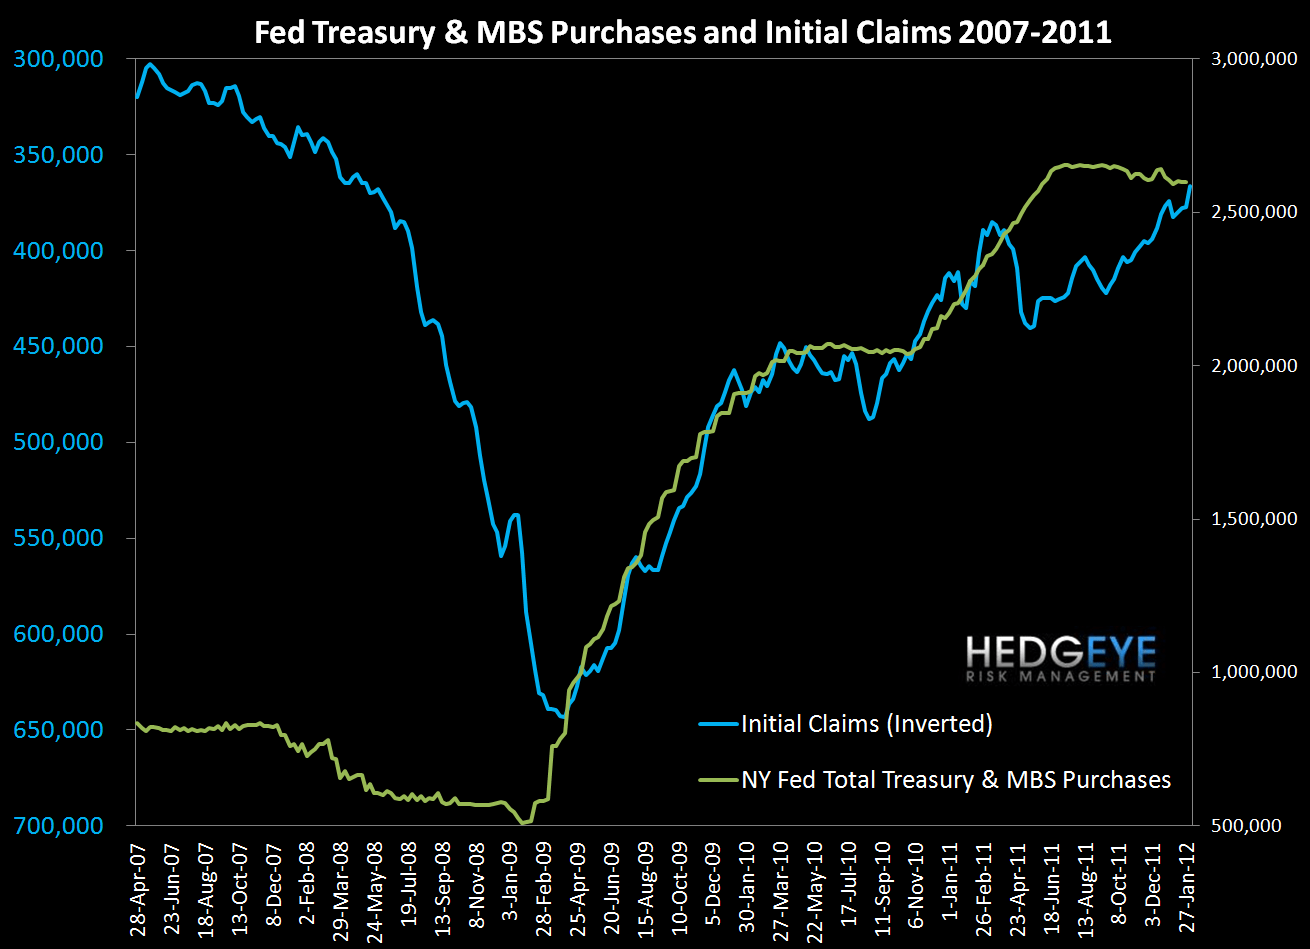 INITIAL CLAIMS: AUTOPILOT ENGAGED - Fed   Claims